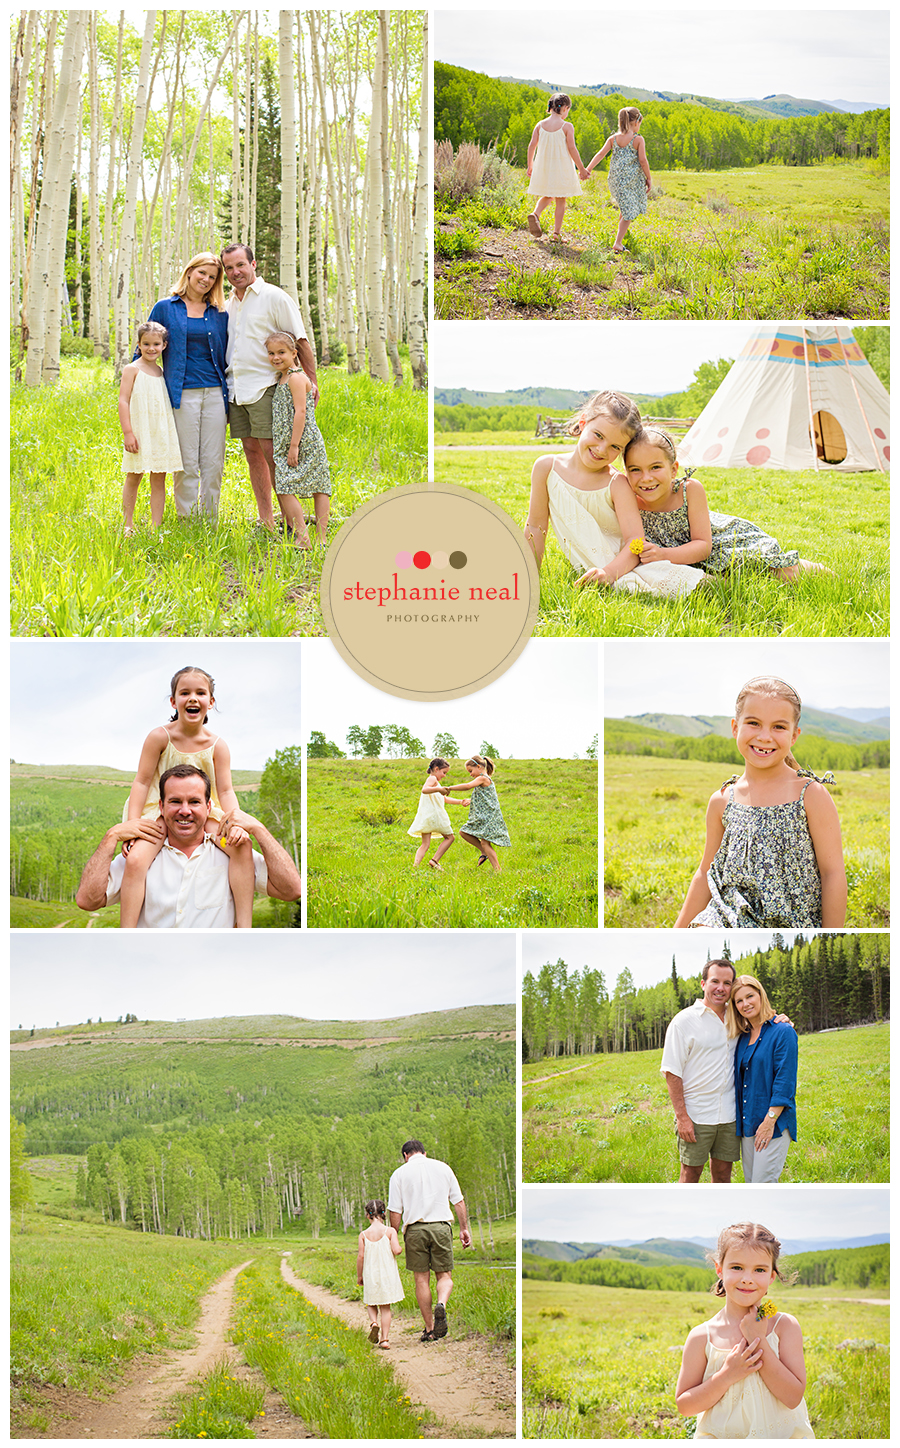 Stephanie Neal Photography Park City Utah Family Photographer, The Outpost Deer Valley Utah